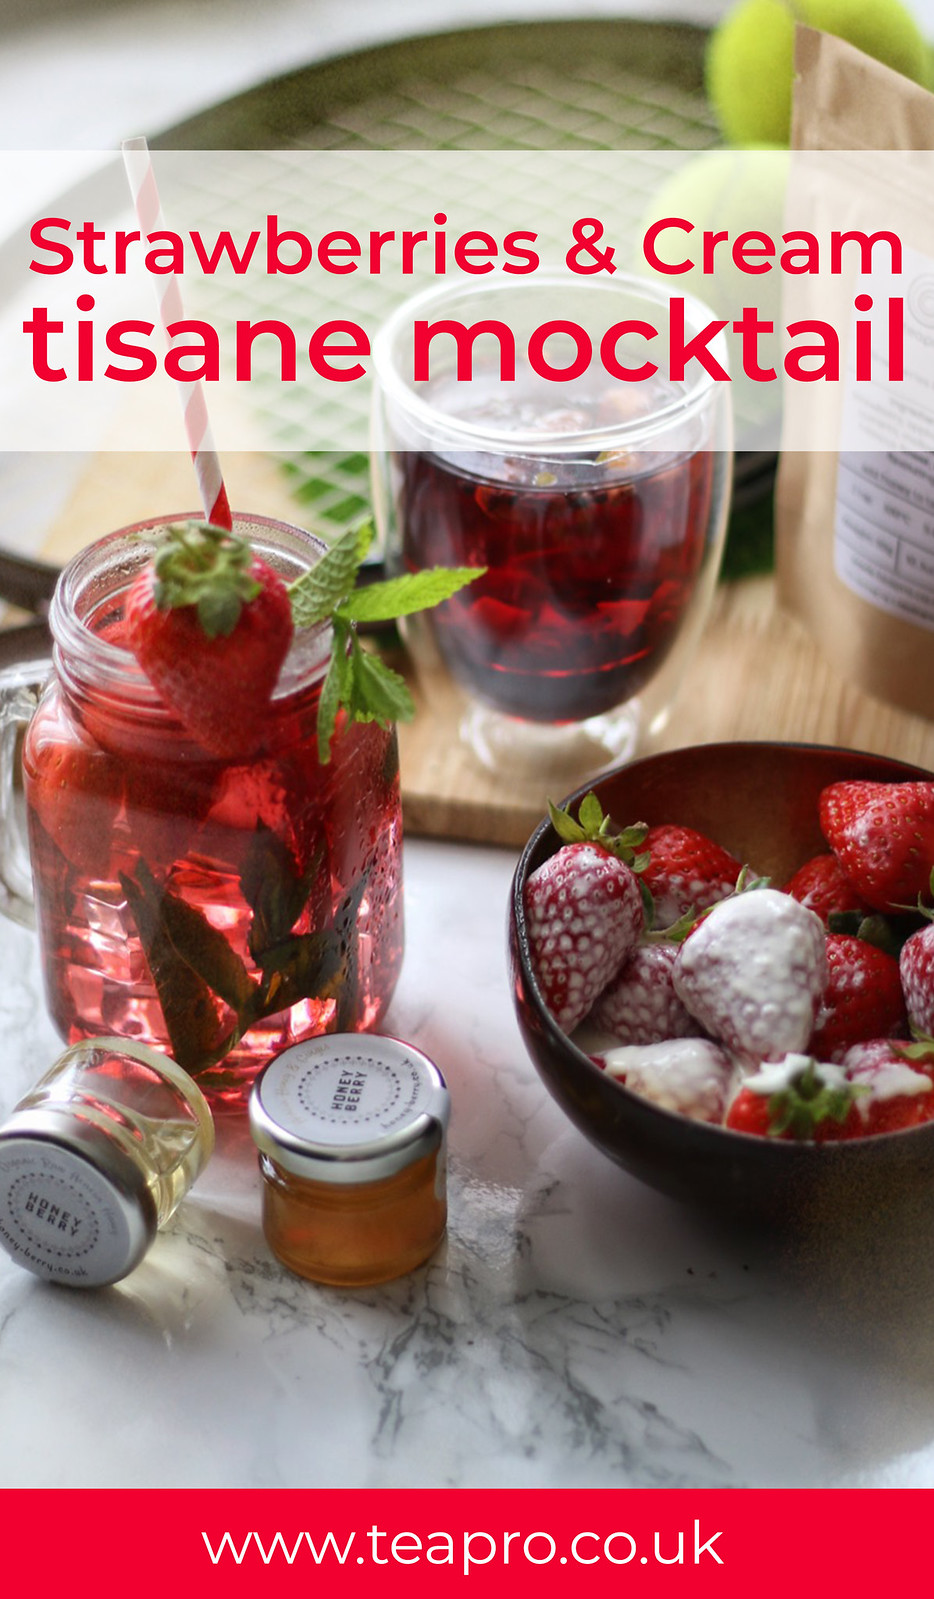 strawberries-and-cream-tisane-mocktail by teapro